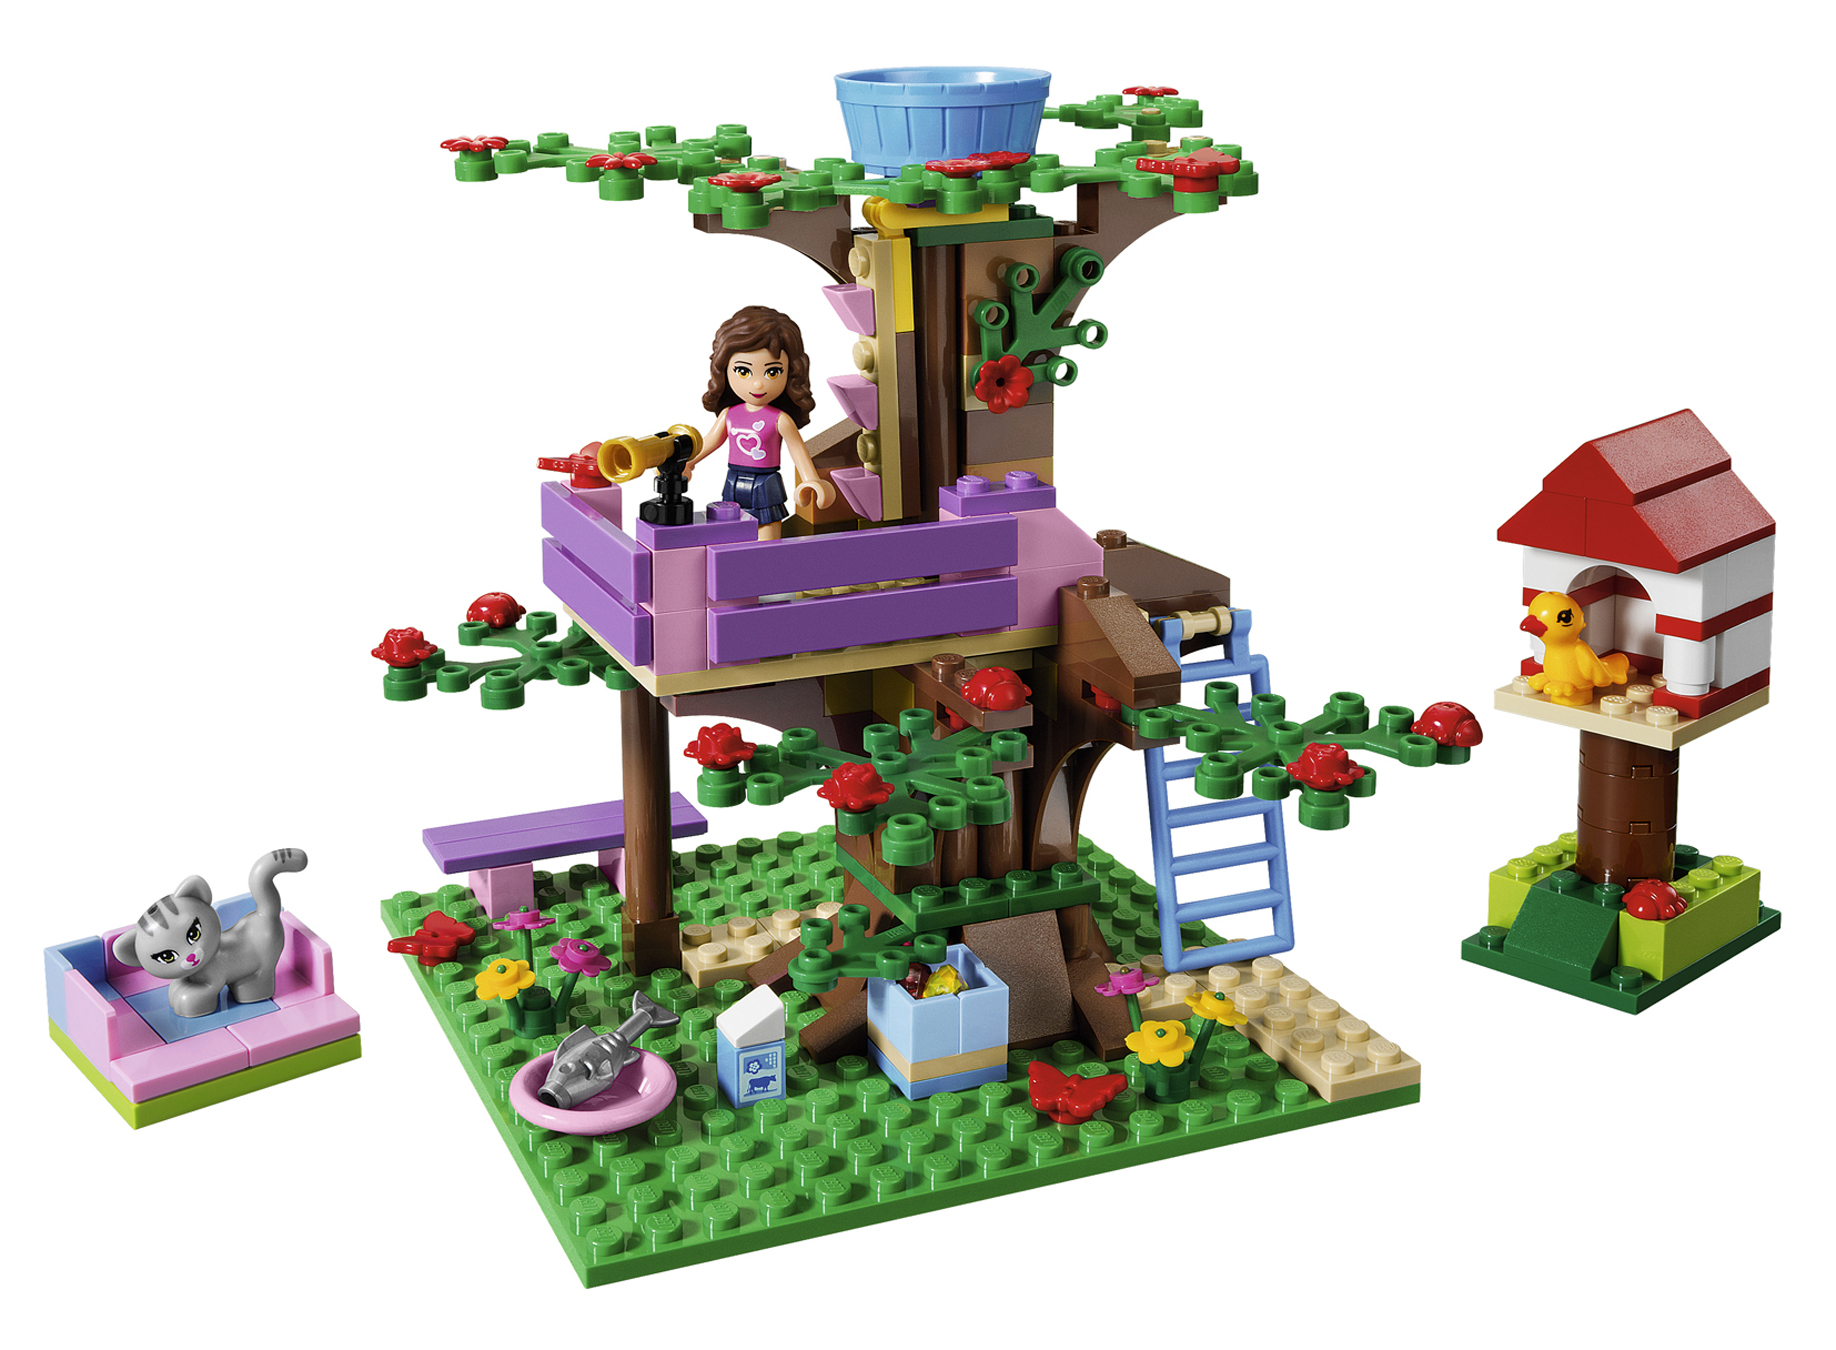 lego friends 3065 abenteuer baumhaus miwarz teltow lego g nstig kaufen. Black Bedroom Furniture Sets. Home Design Ideas